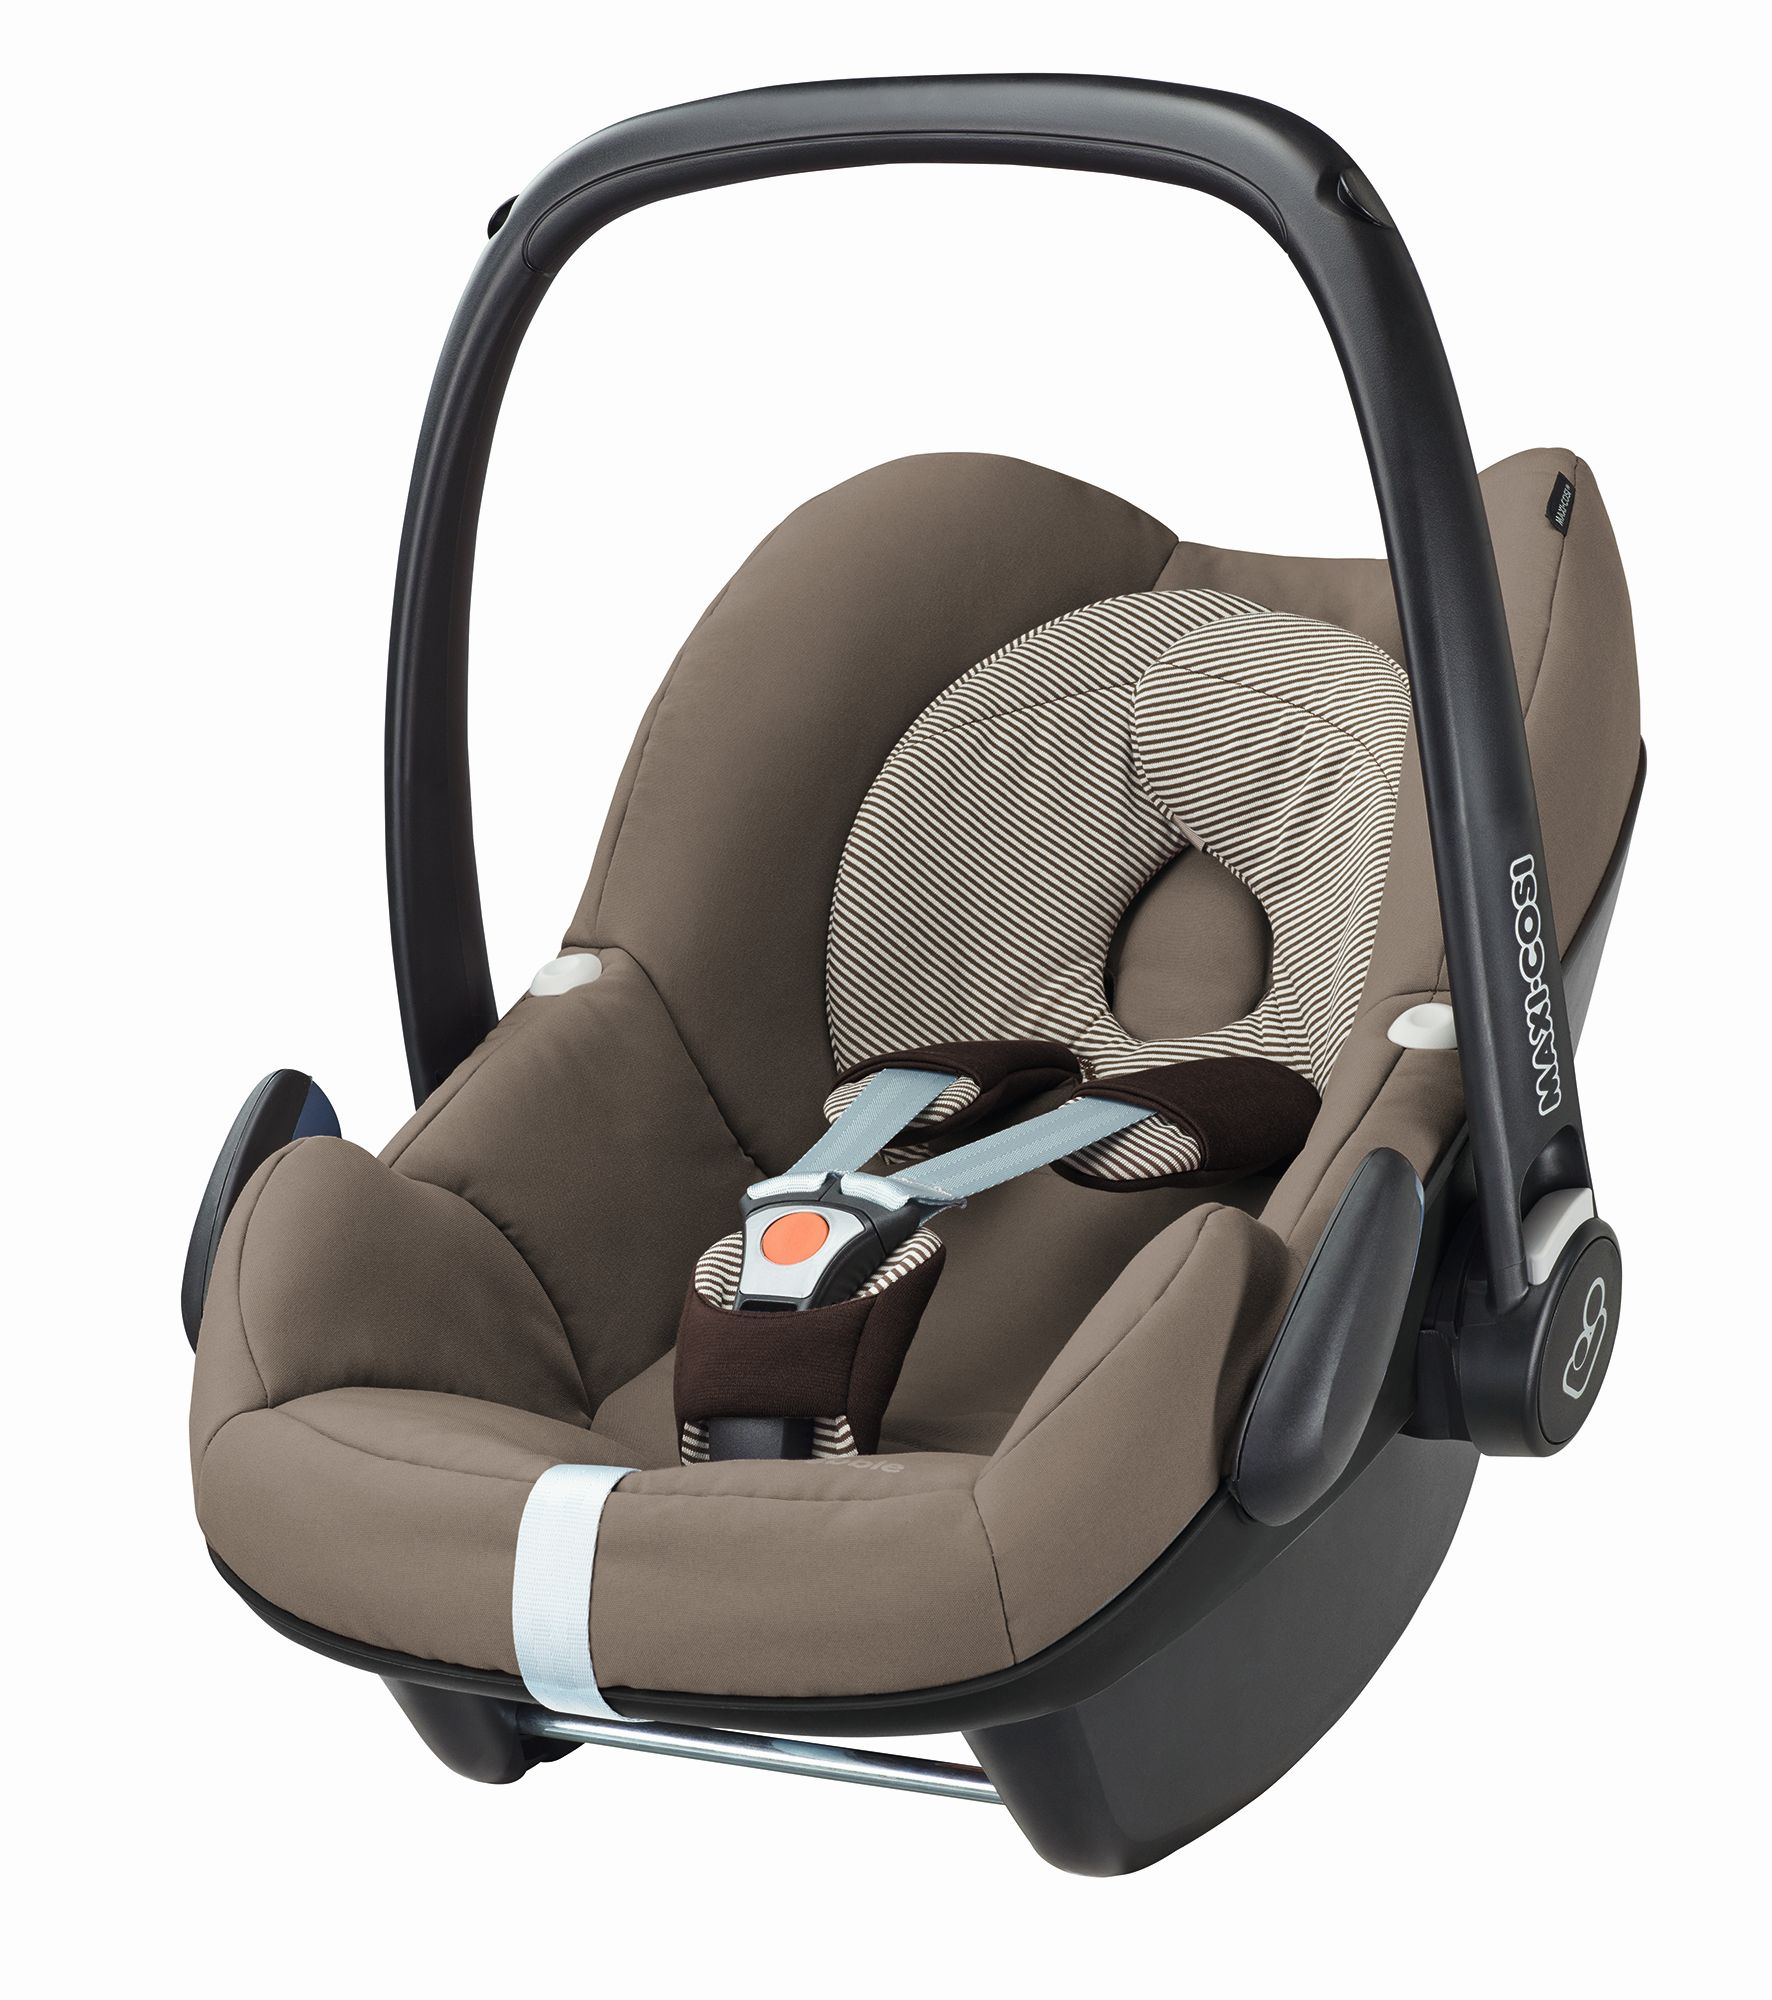 maxi cosi infant carrier pebble 2018 earth brown buy at kidsroom car seats. Black Bedroom Furniture Sets. Home Design Ideas